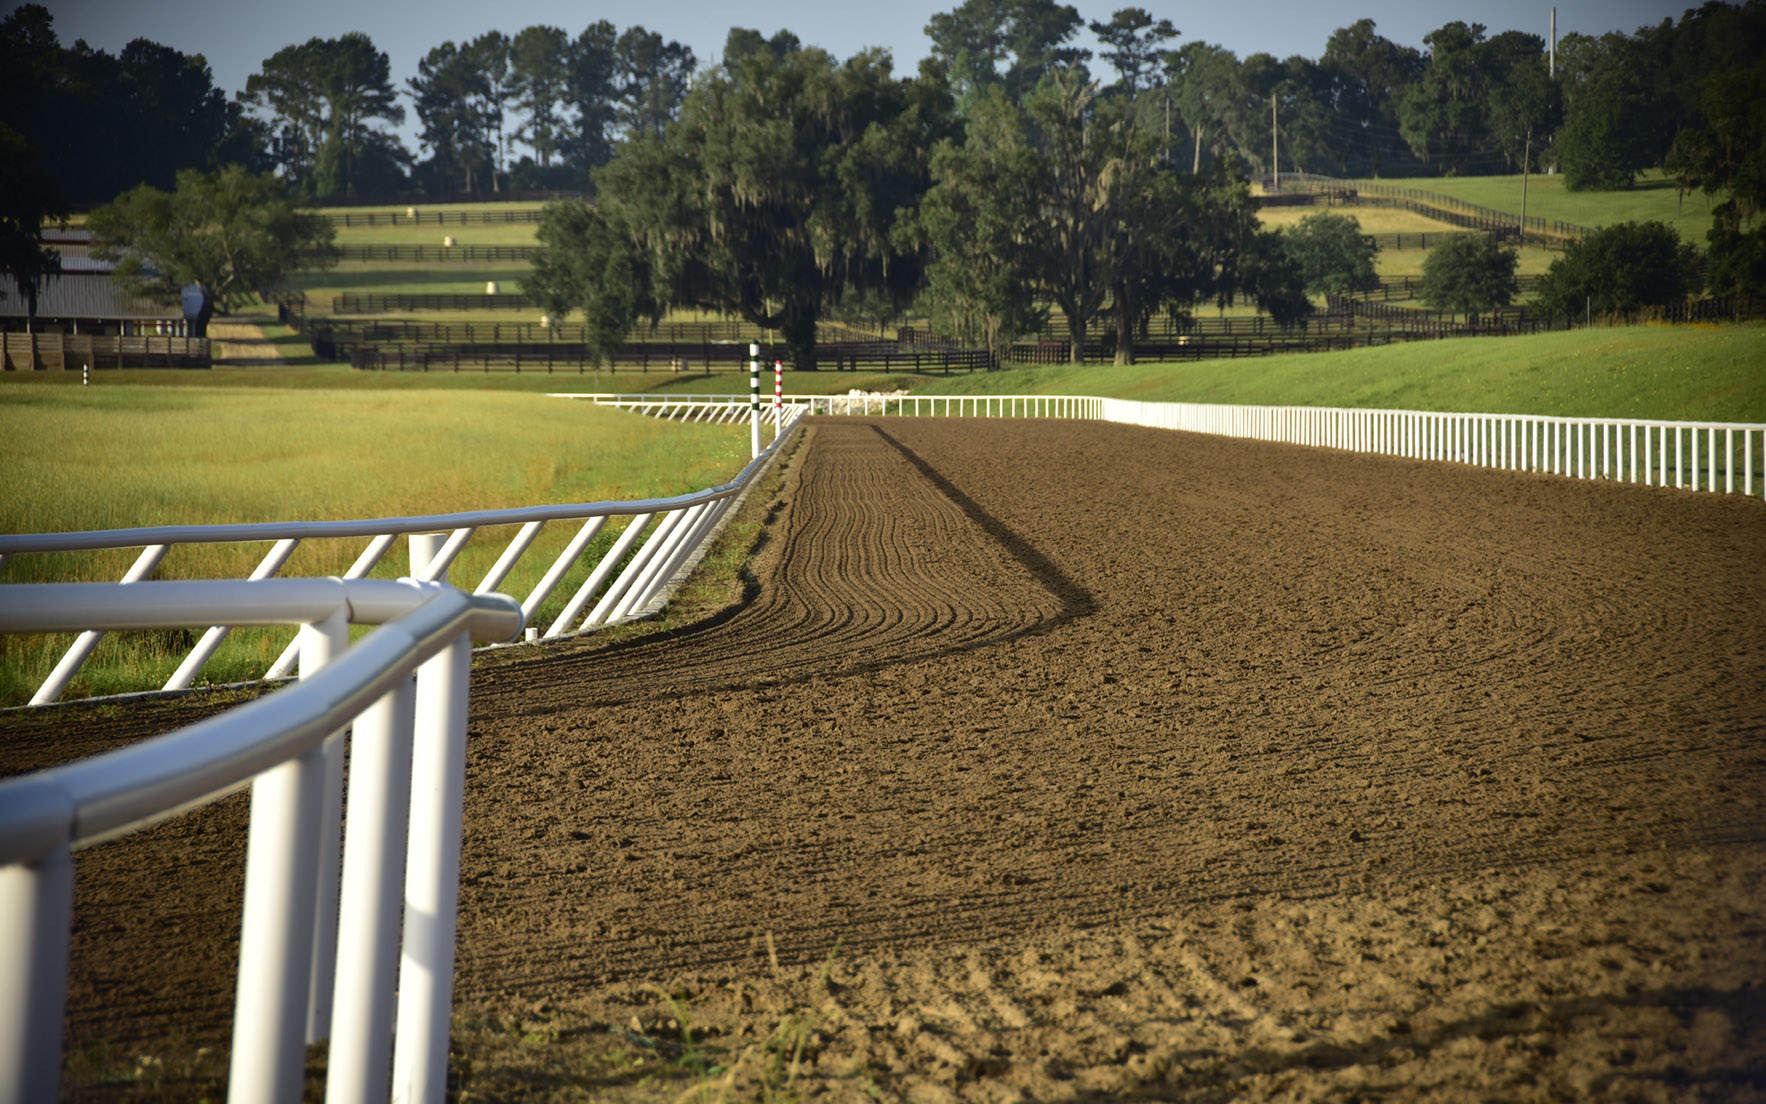 Looking down the track at Bridlewood Farm